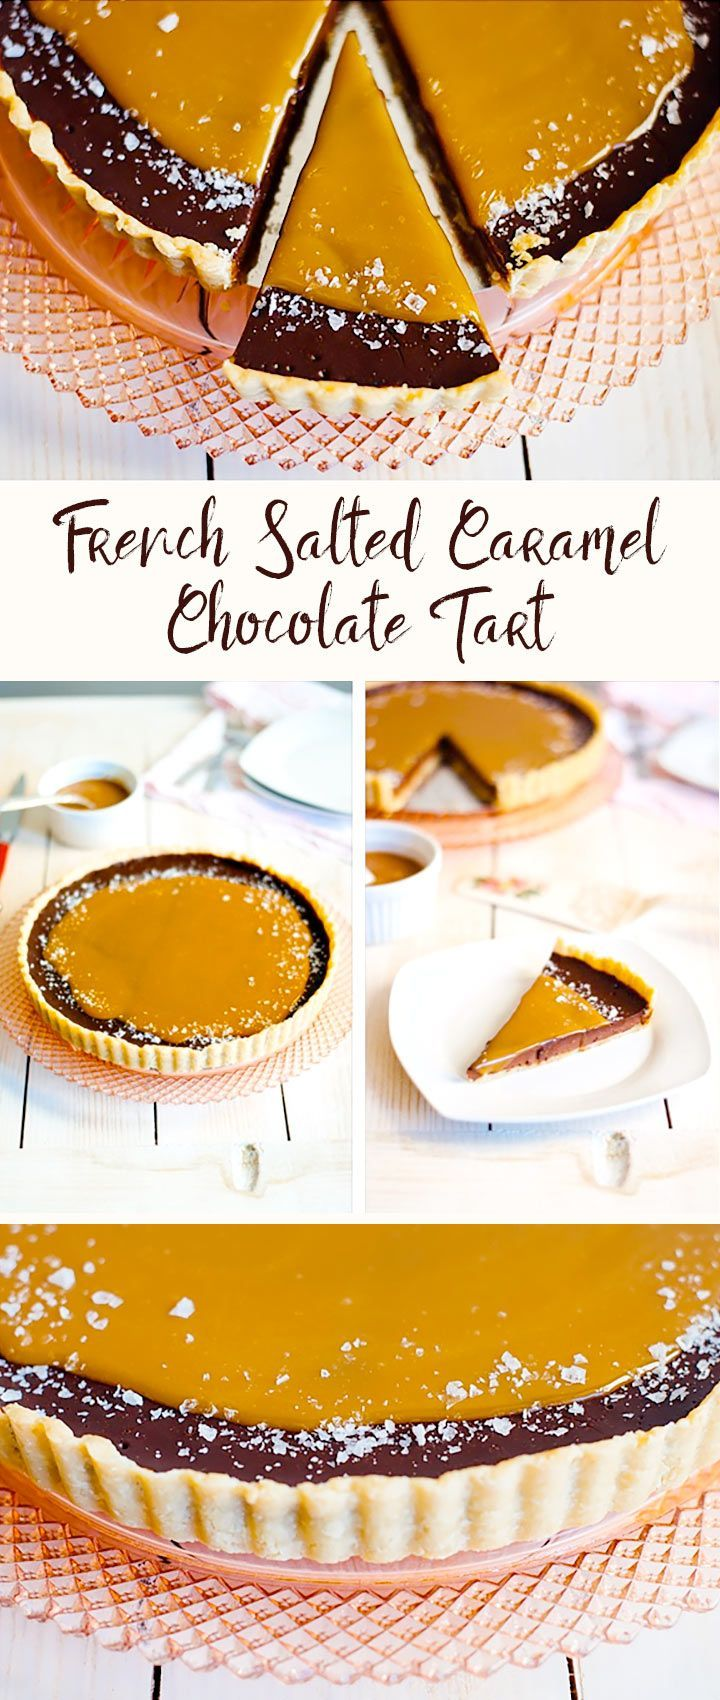 French Slated Caramel Chocolate Tart Recipe | The Hungry Traveler